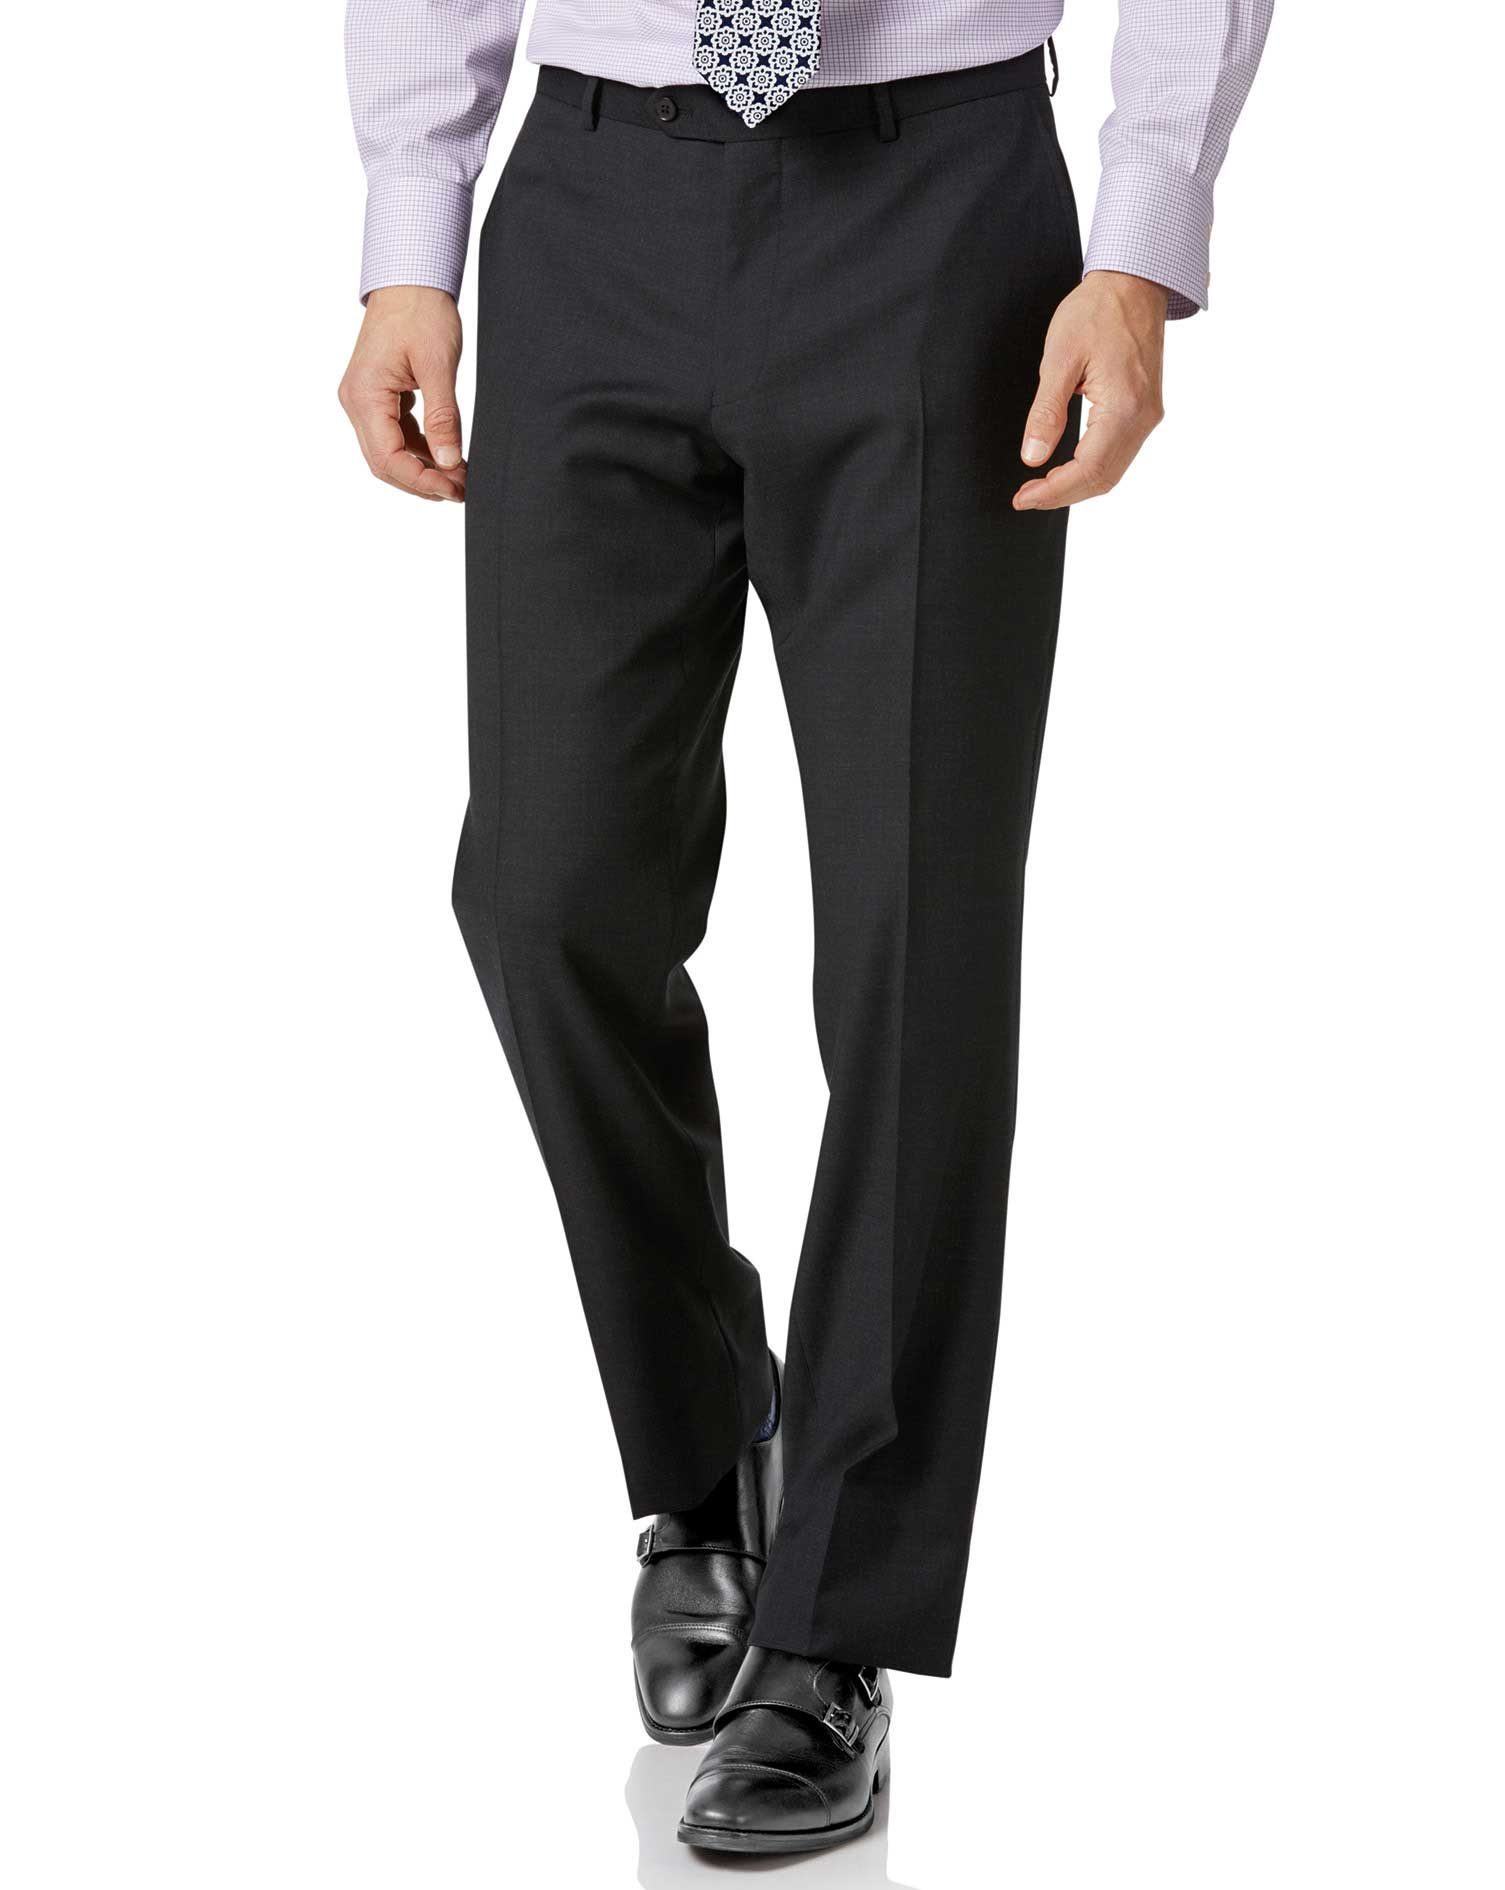 Charcoal Classic Fit Twill Business Suit Trousers Size W36 L34 by Charles Tyrwhitt